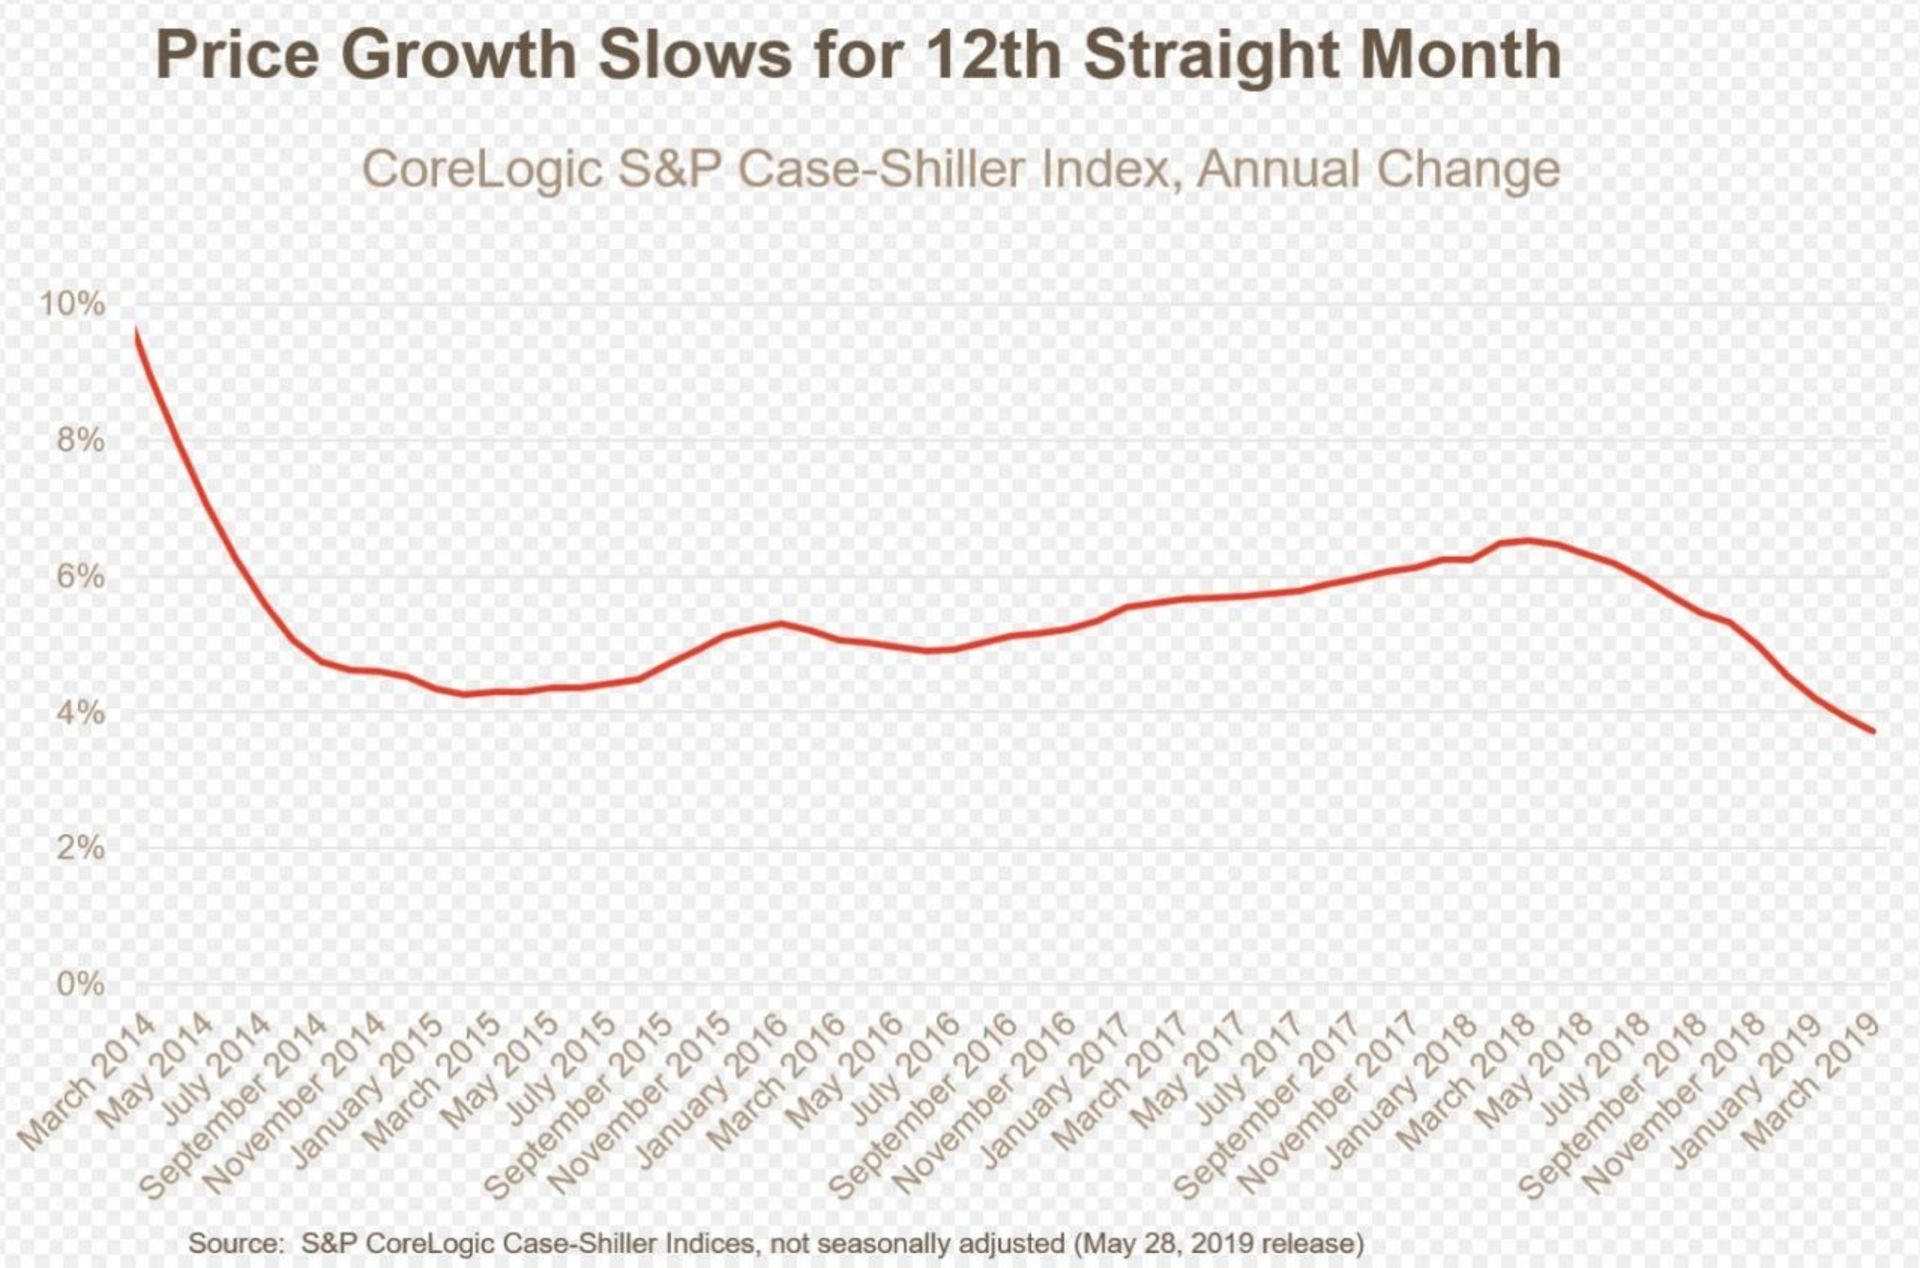 Home price growth slows for 12th straight month